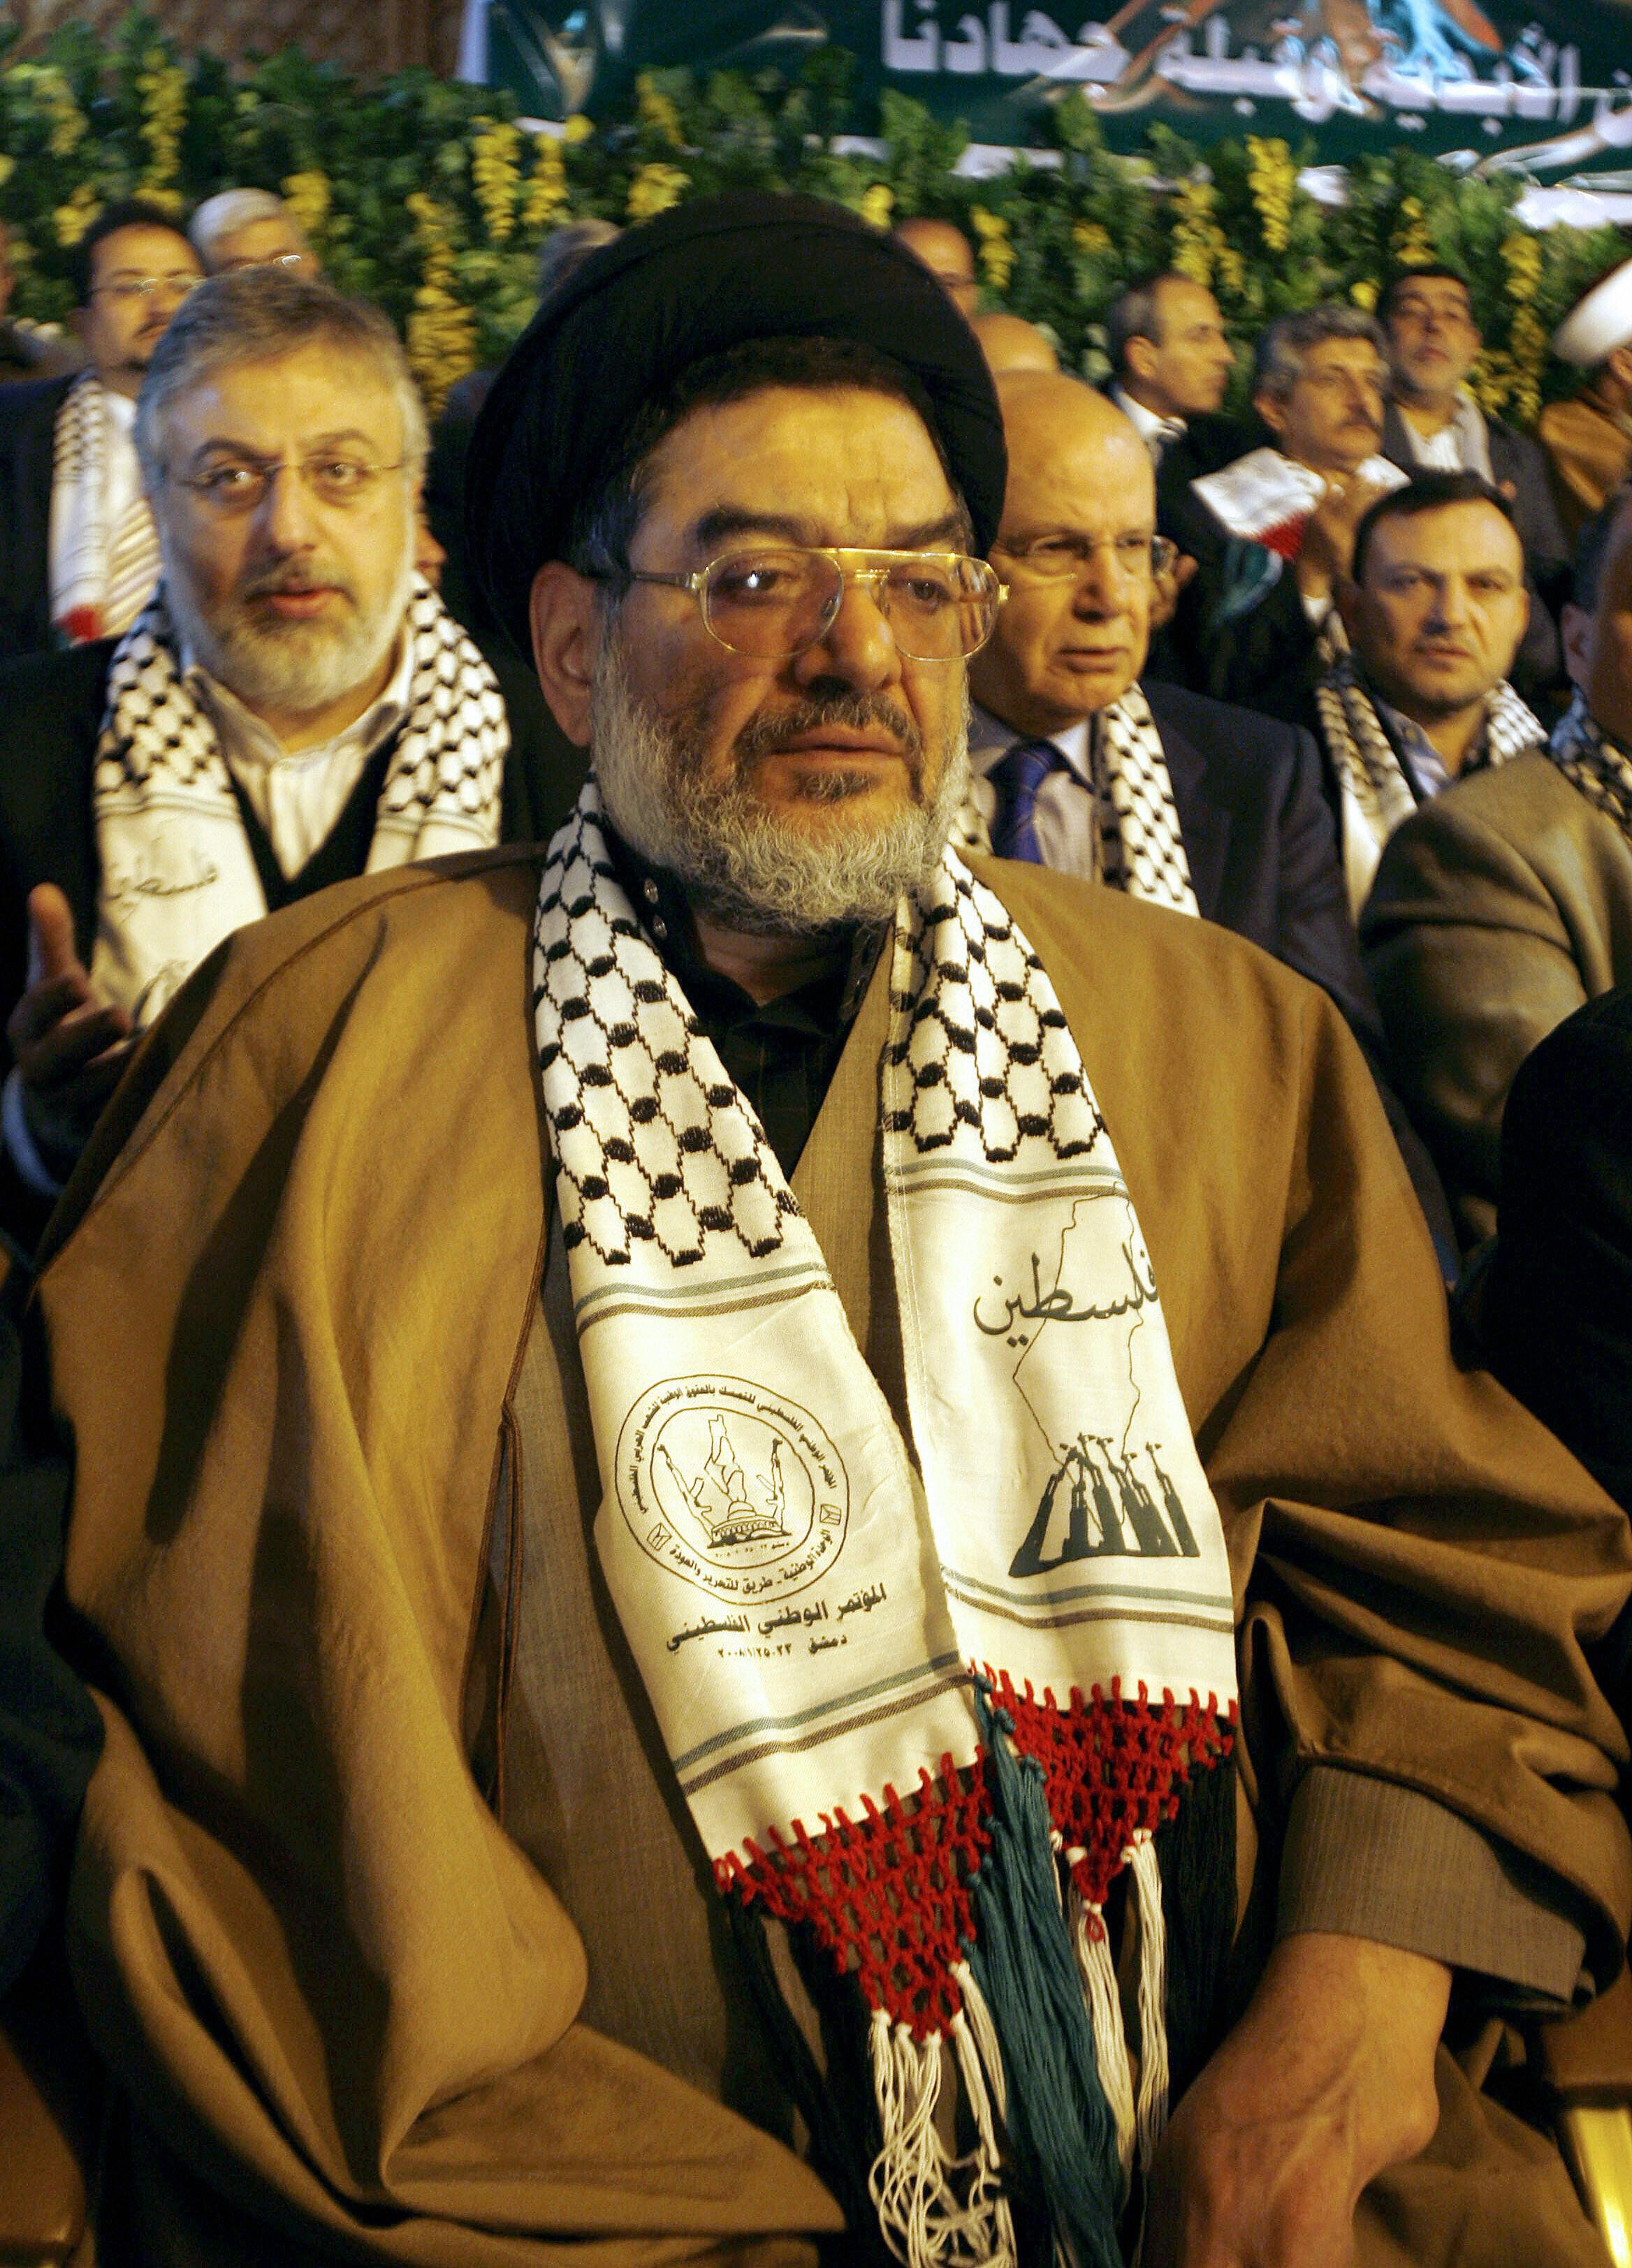 Iranian Ali Akbar Mohtashami, a former Interior Minister and widely recognized as one of the founders of Lebanese Hezbollah,